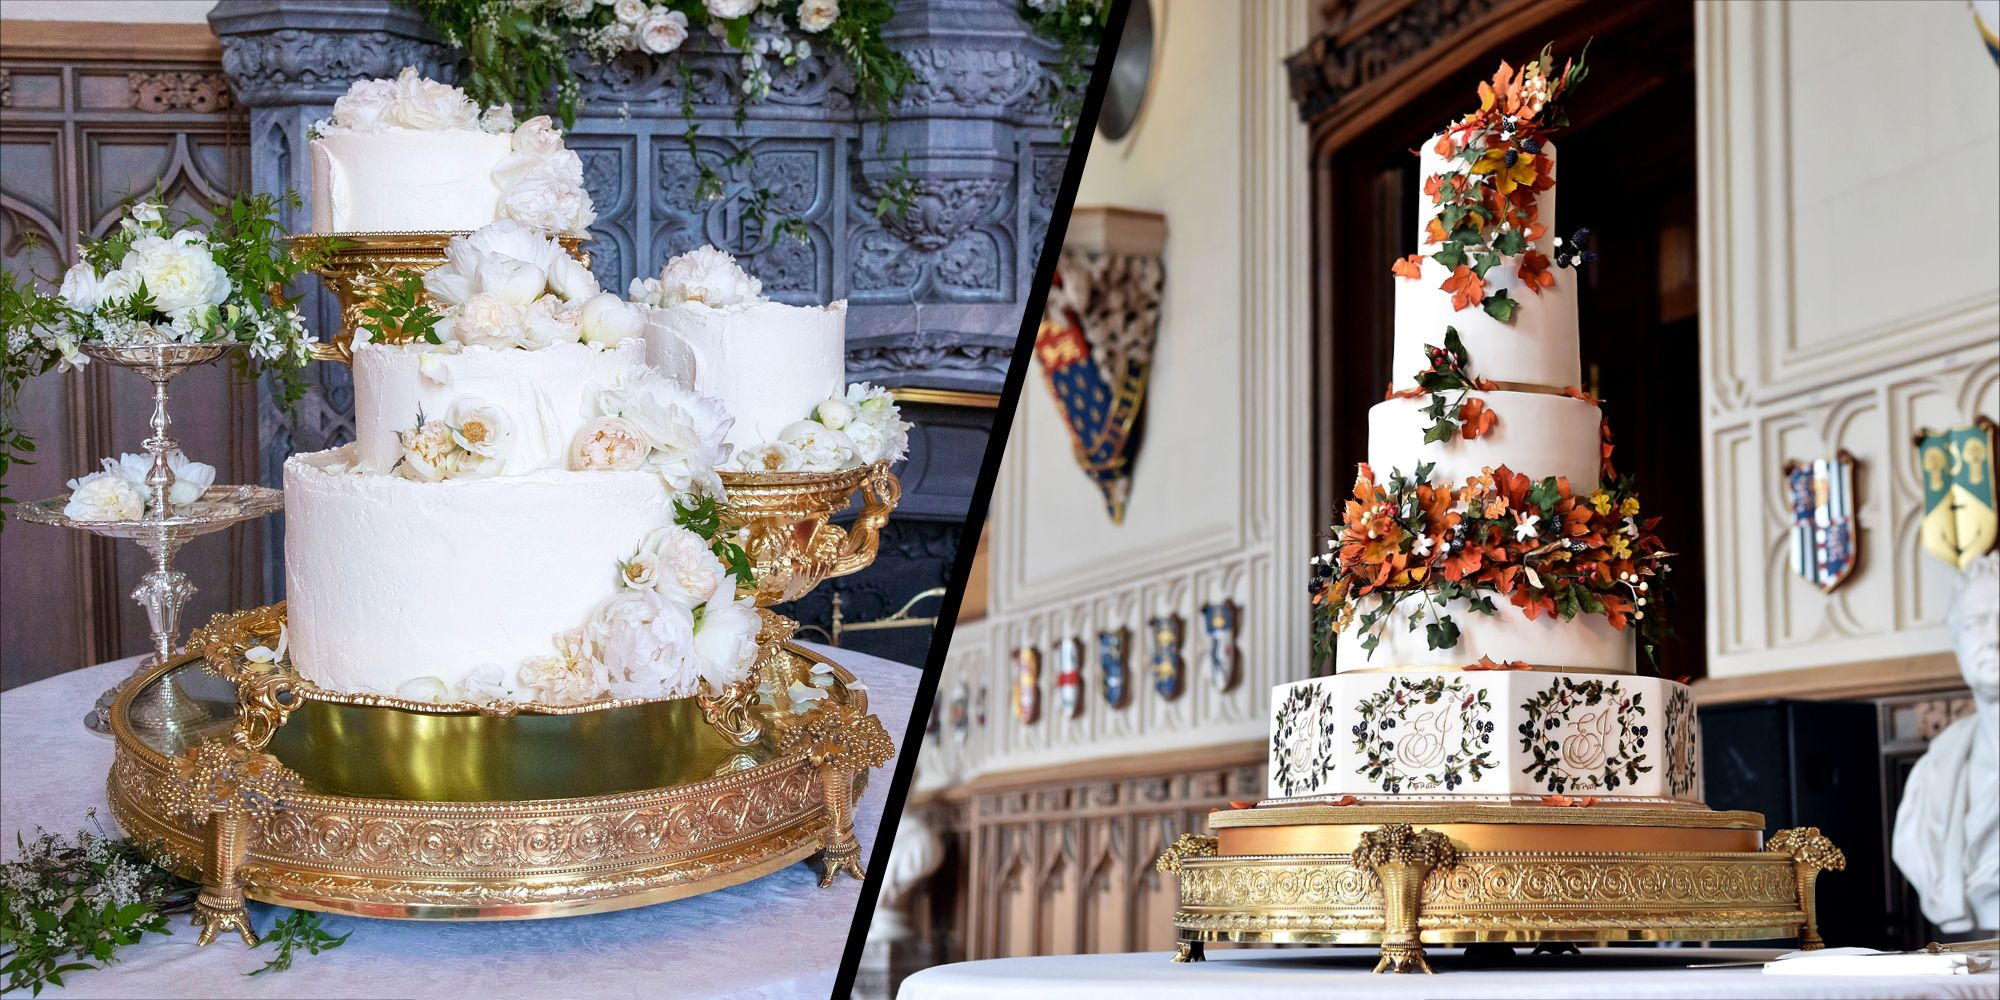 royal wedding cake how princess eugenie s wedding cake compares to those at other royal weddings royal wedding cake how princess